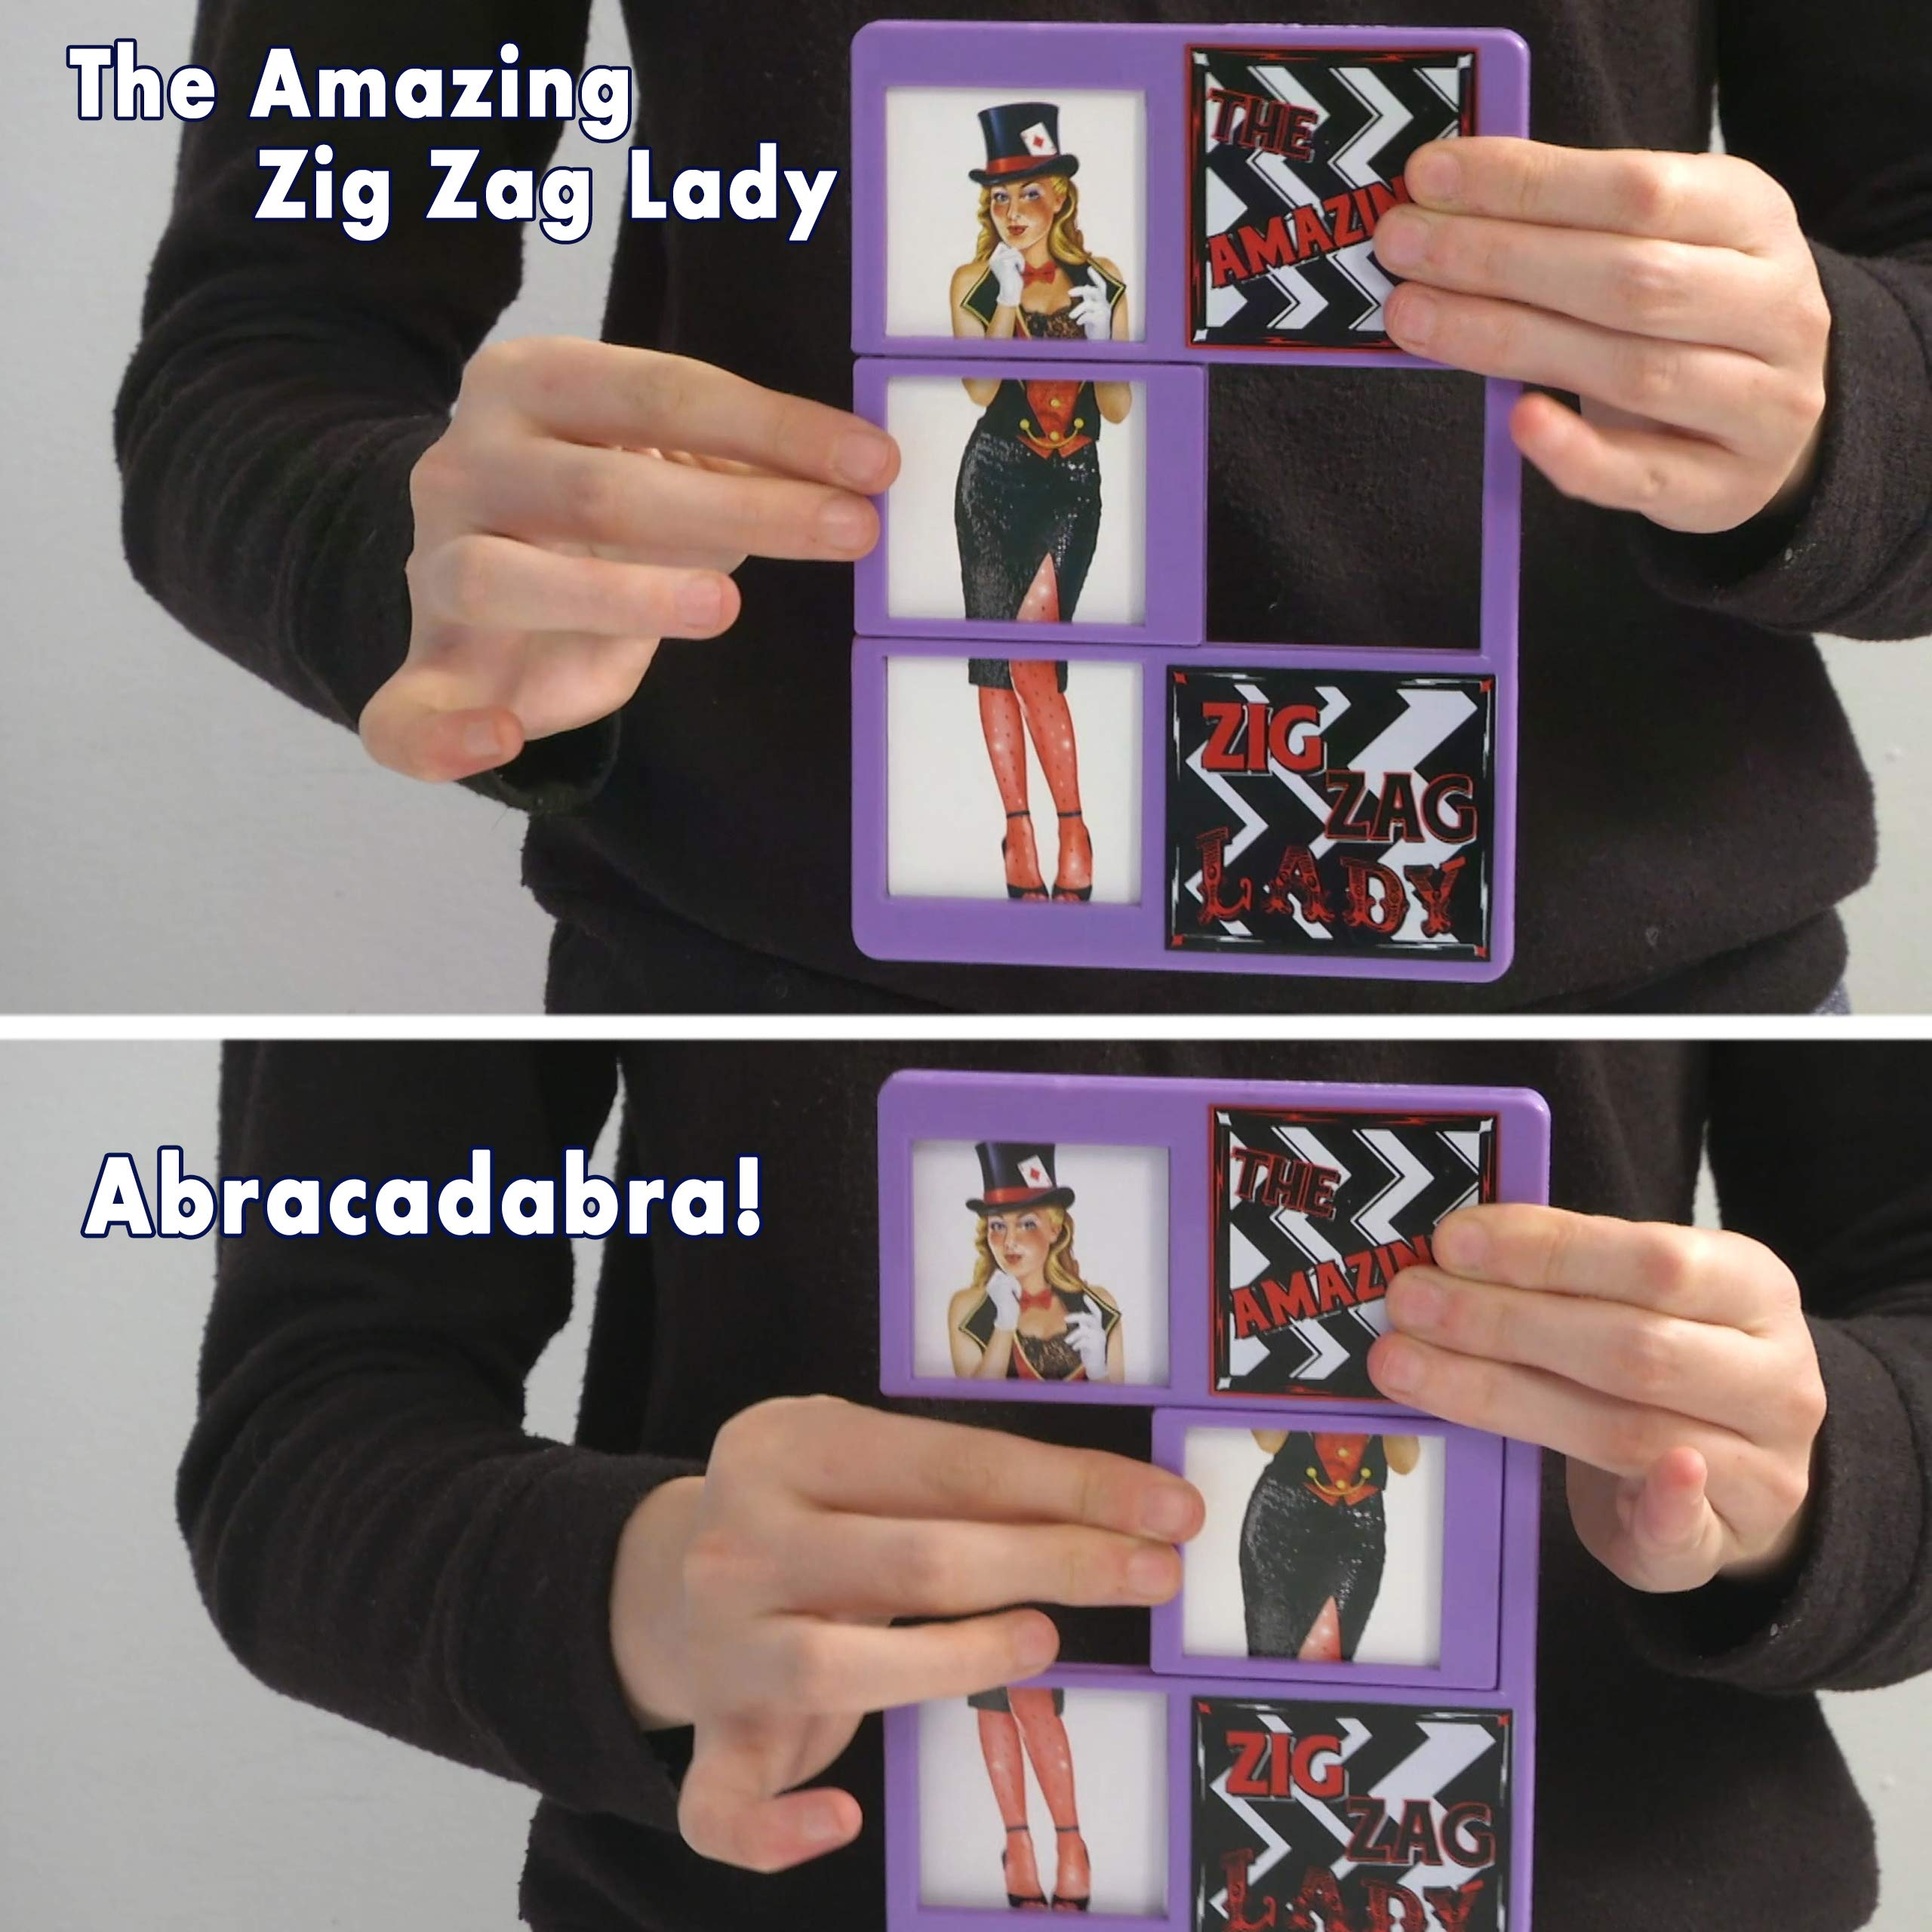 Fantasma Spectacular Magic Box Set for Kids - Magic Kit and Card Trick - Learn 135 Magic Tricks - Great for Boys and Girls 7 Years and Older        by Fantasma (Image #4)